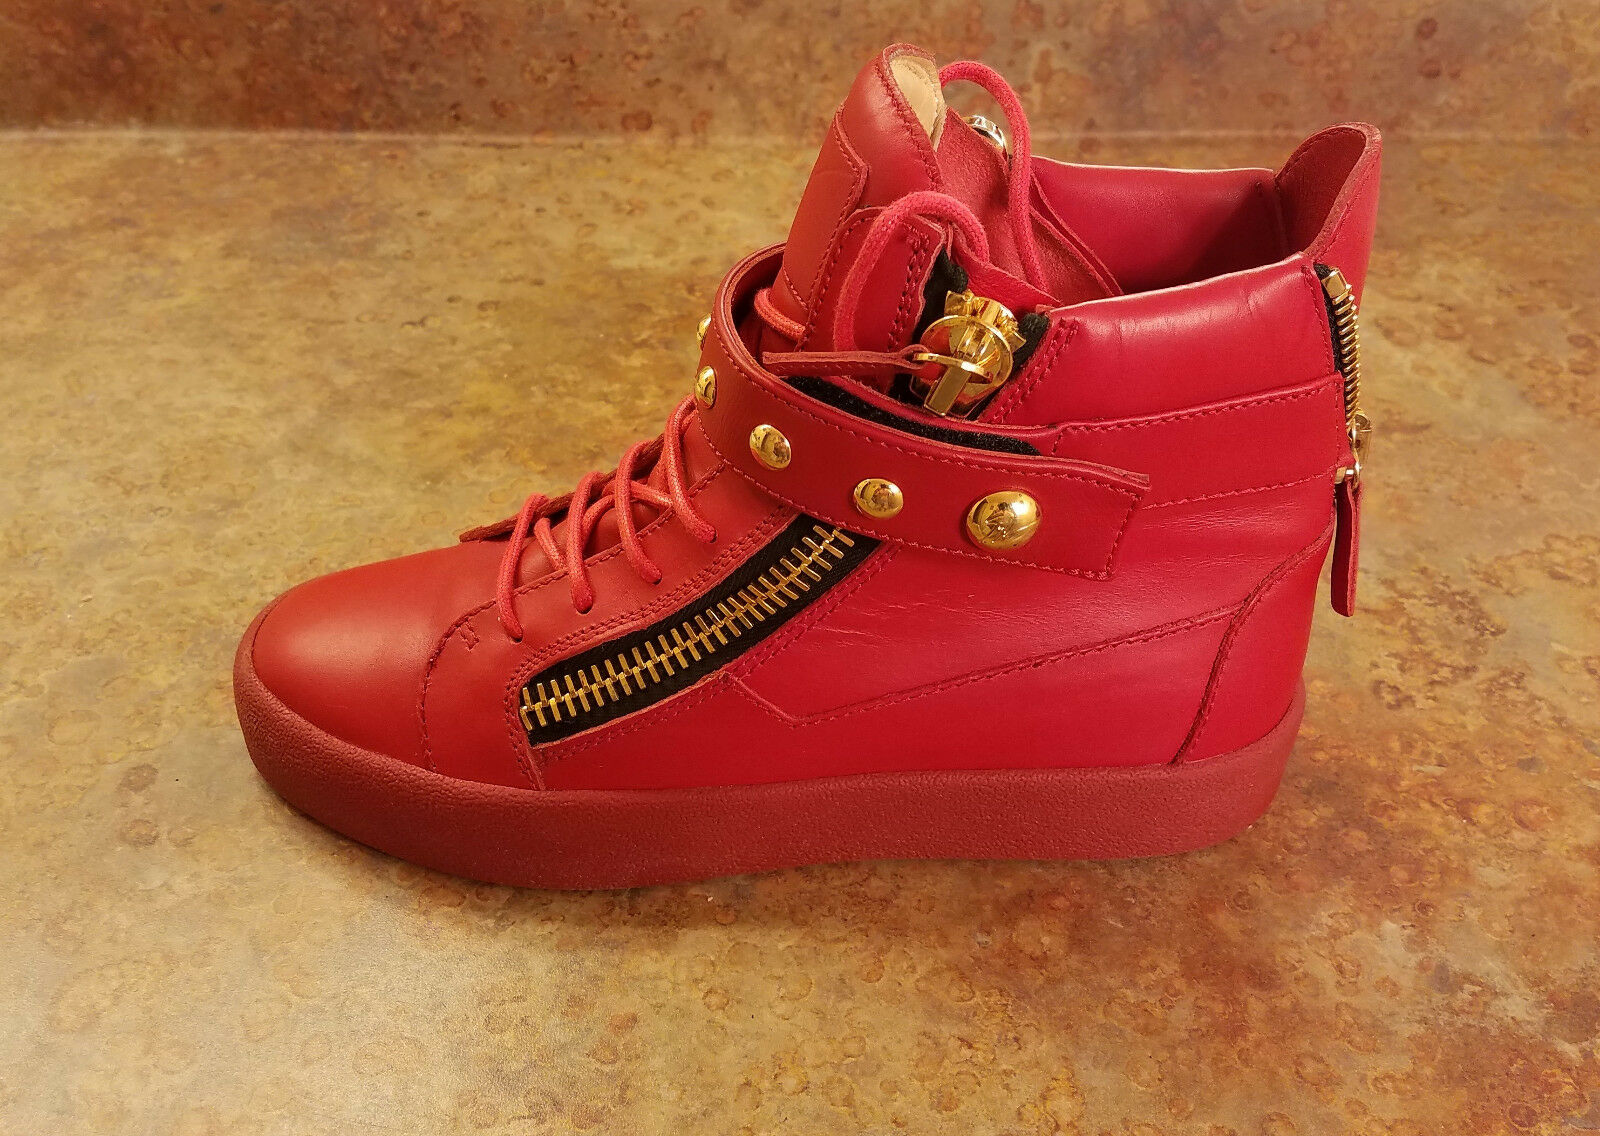 Giuseppe Zanotti Stud Red Gold High Top  Uomo Size 7   40 Eur MSRP  950